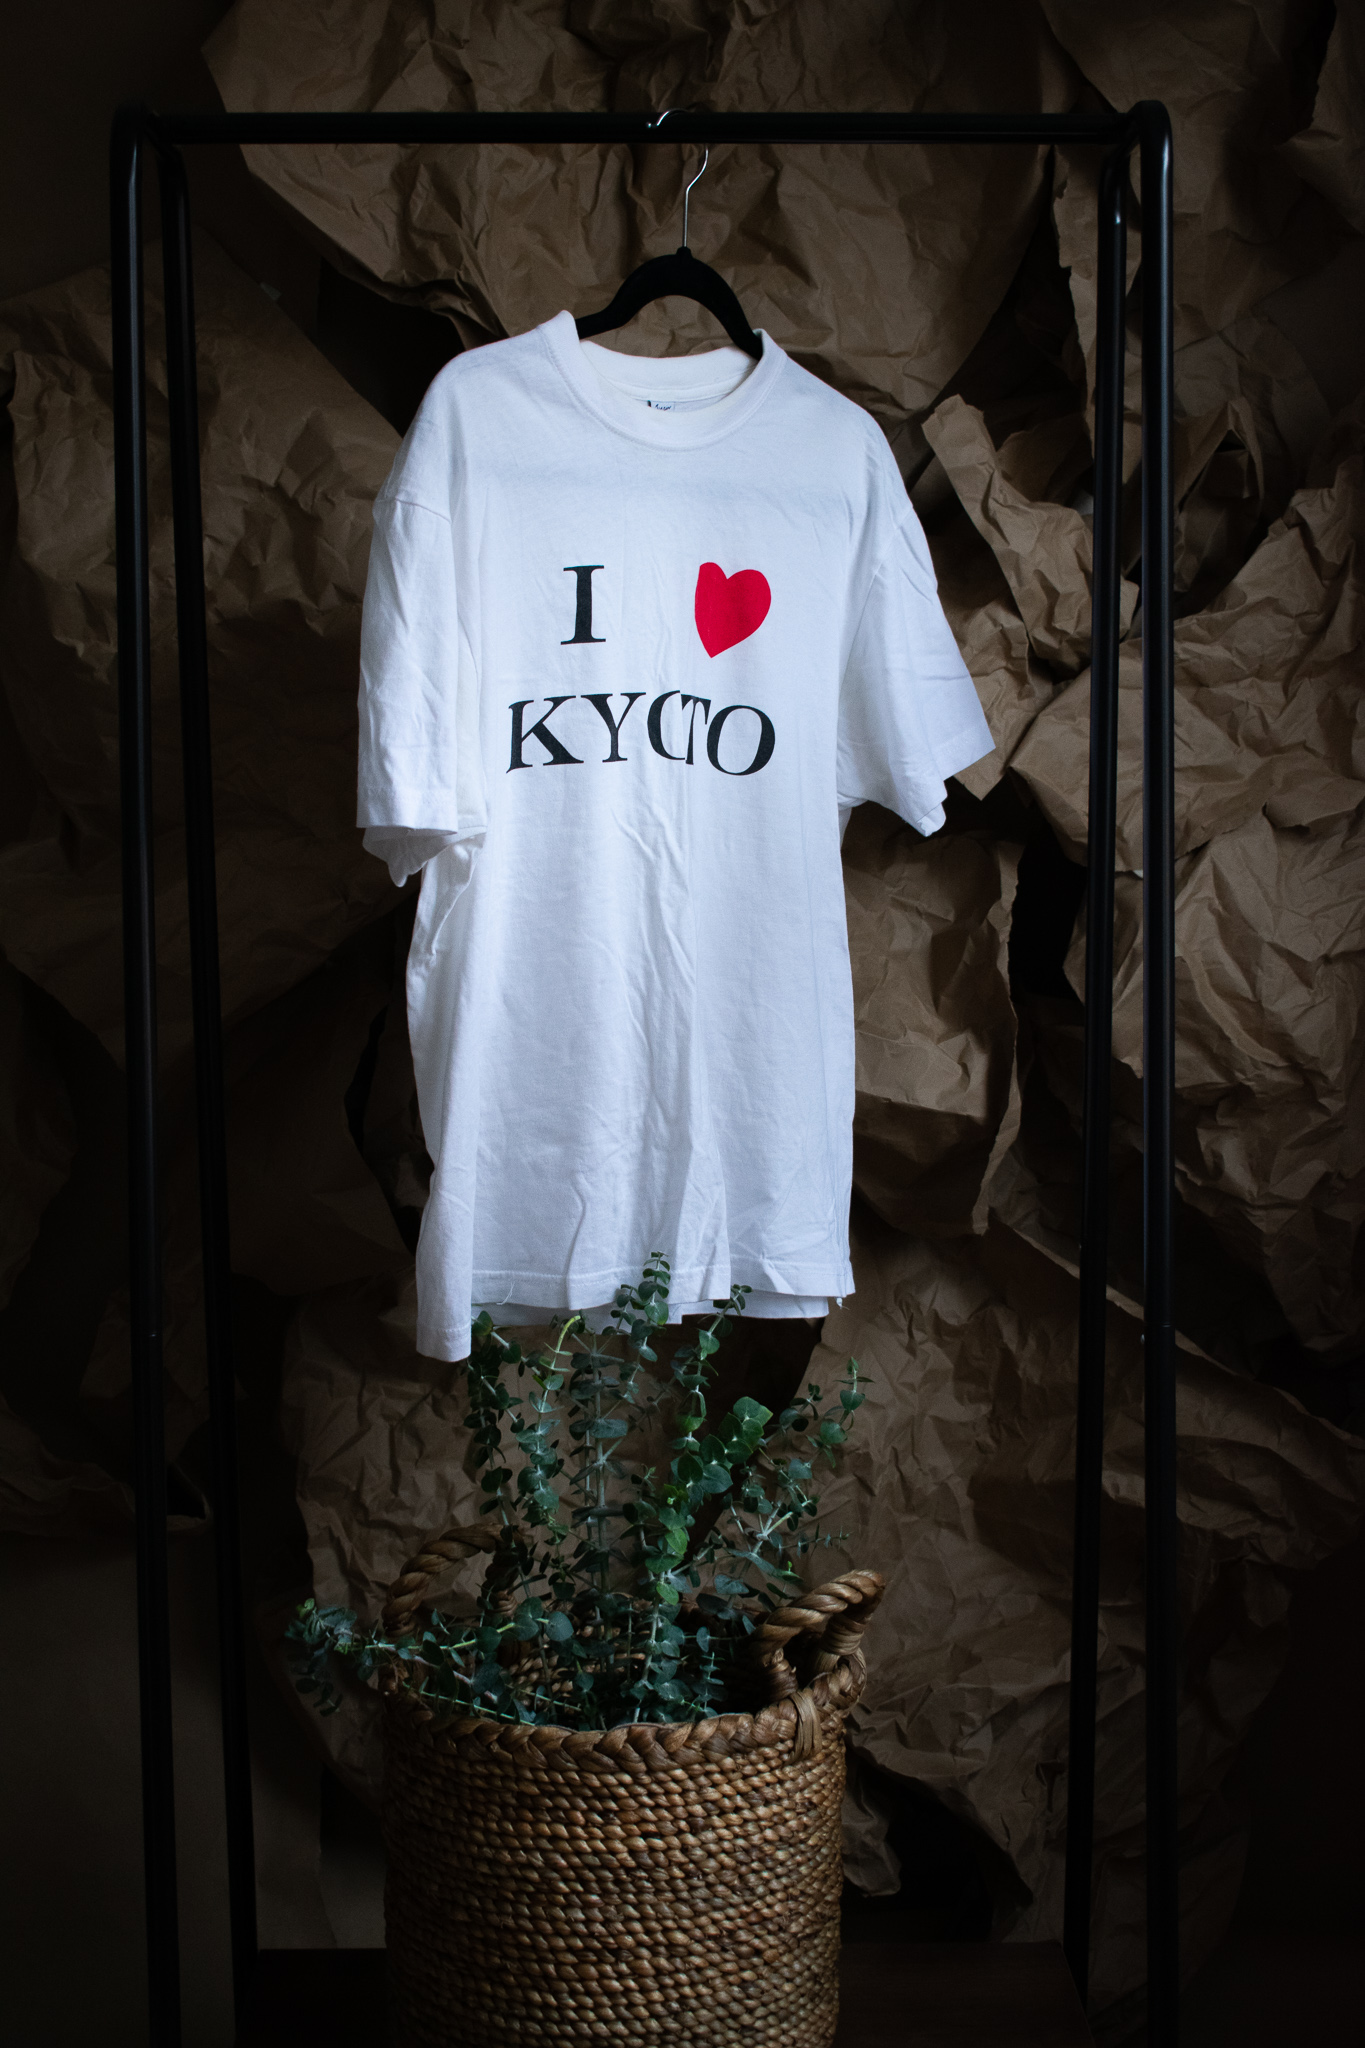 i <3 kyoto tee. 2 years. a gift. a little wear.